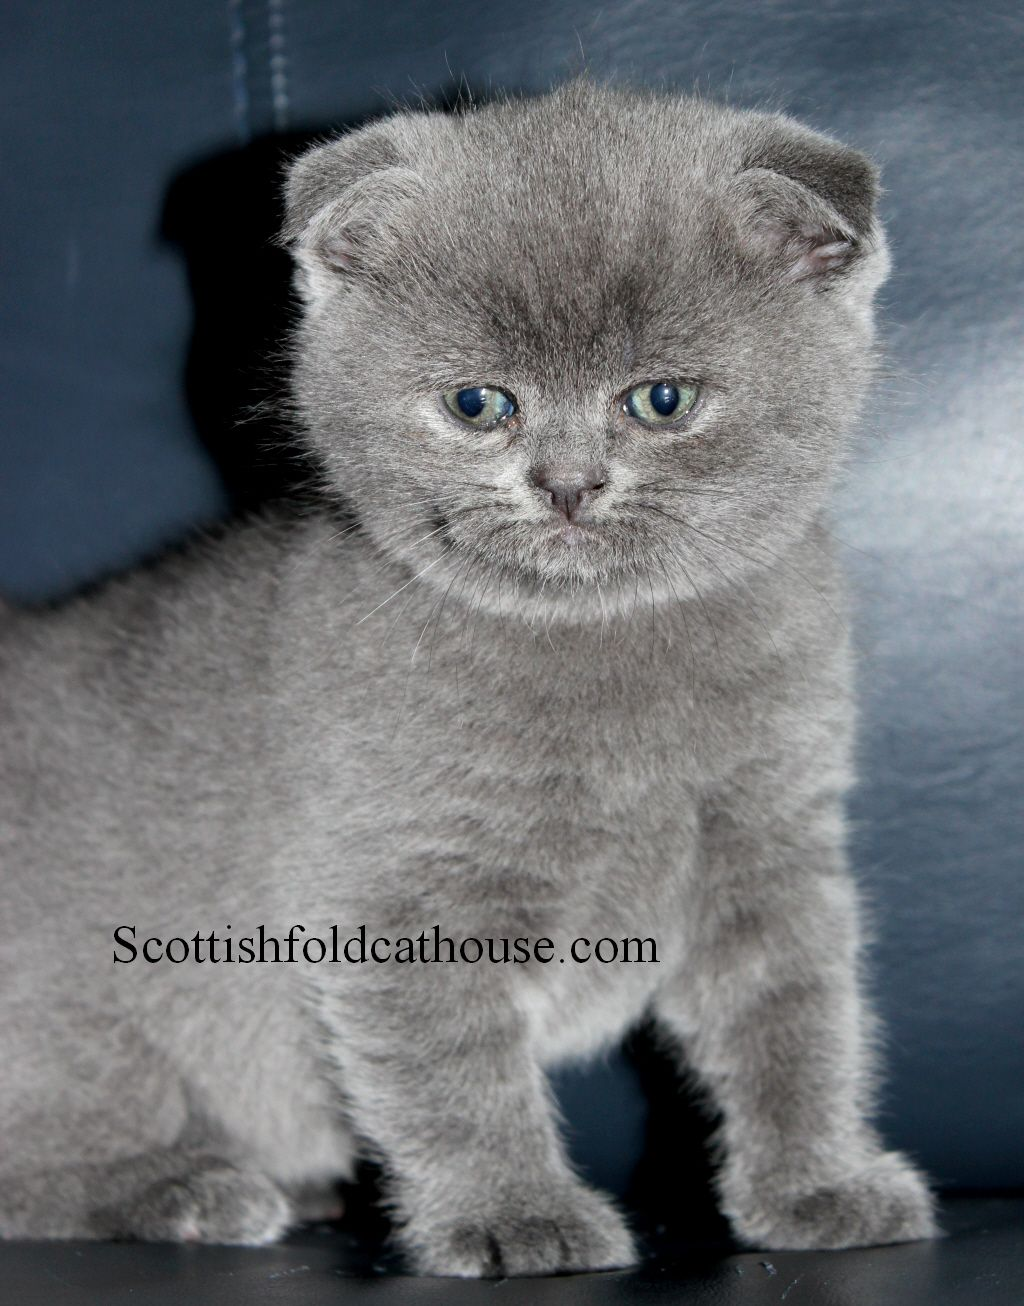 Scottish Folds And British Shorthair Kittens For Sale British Shorthair Kittens Bengal Cat For Sale Scottish Fold Kittens